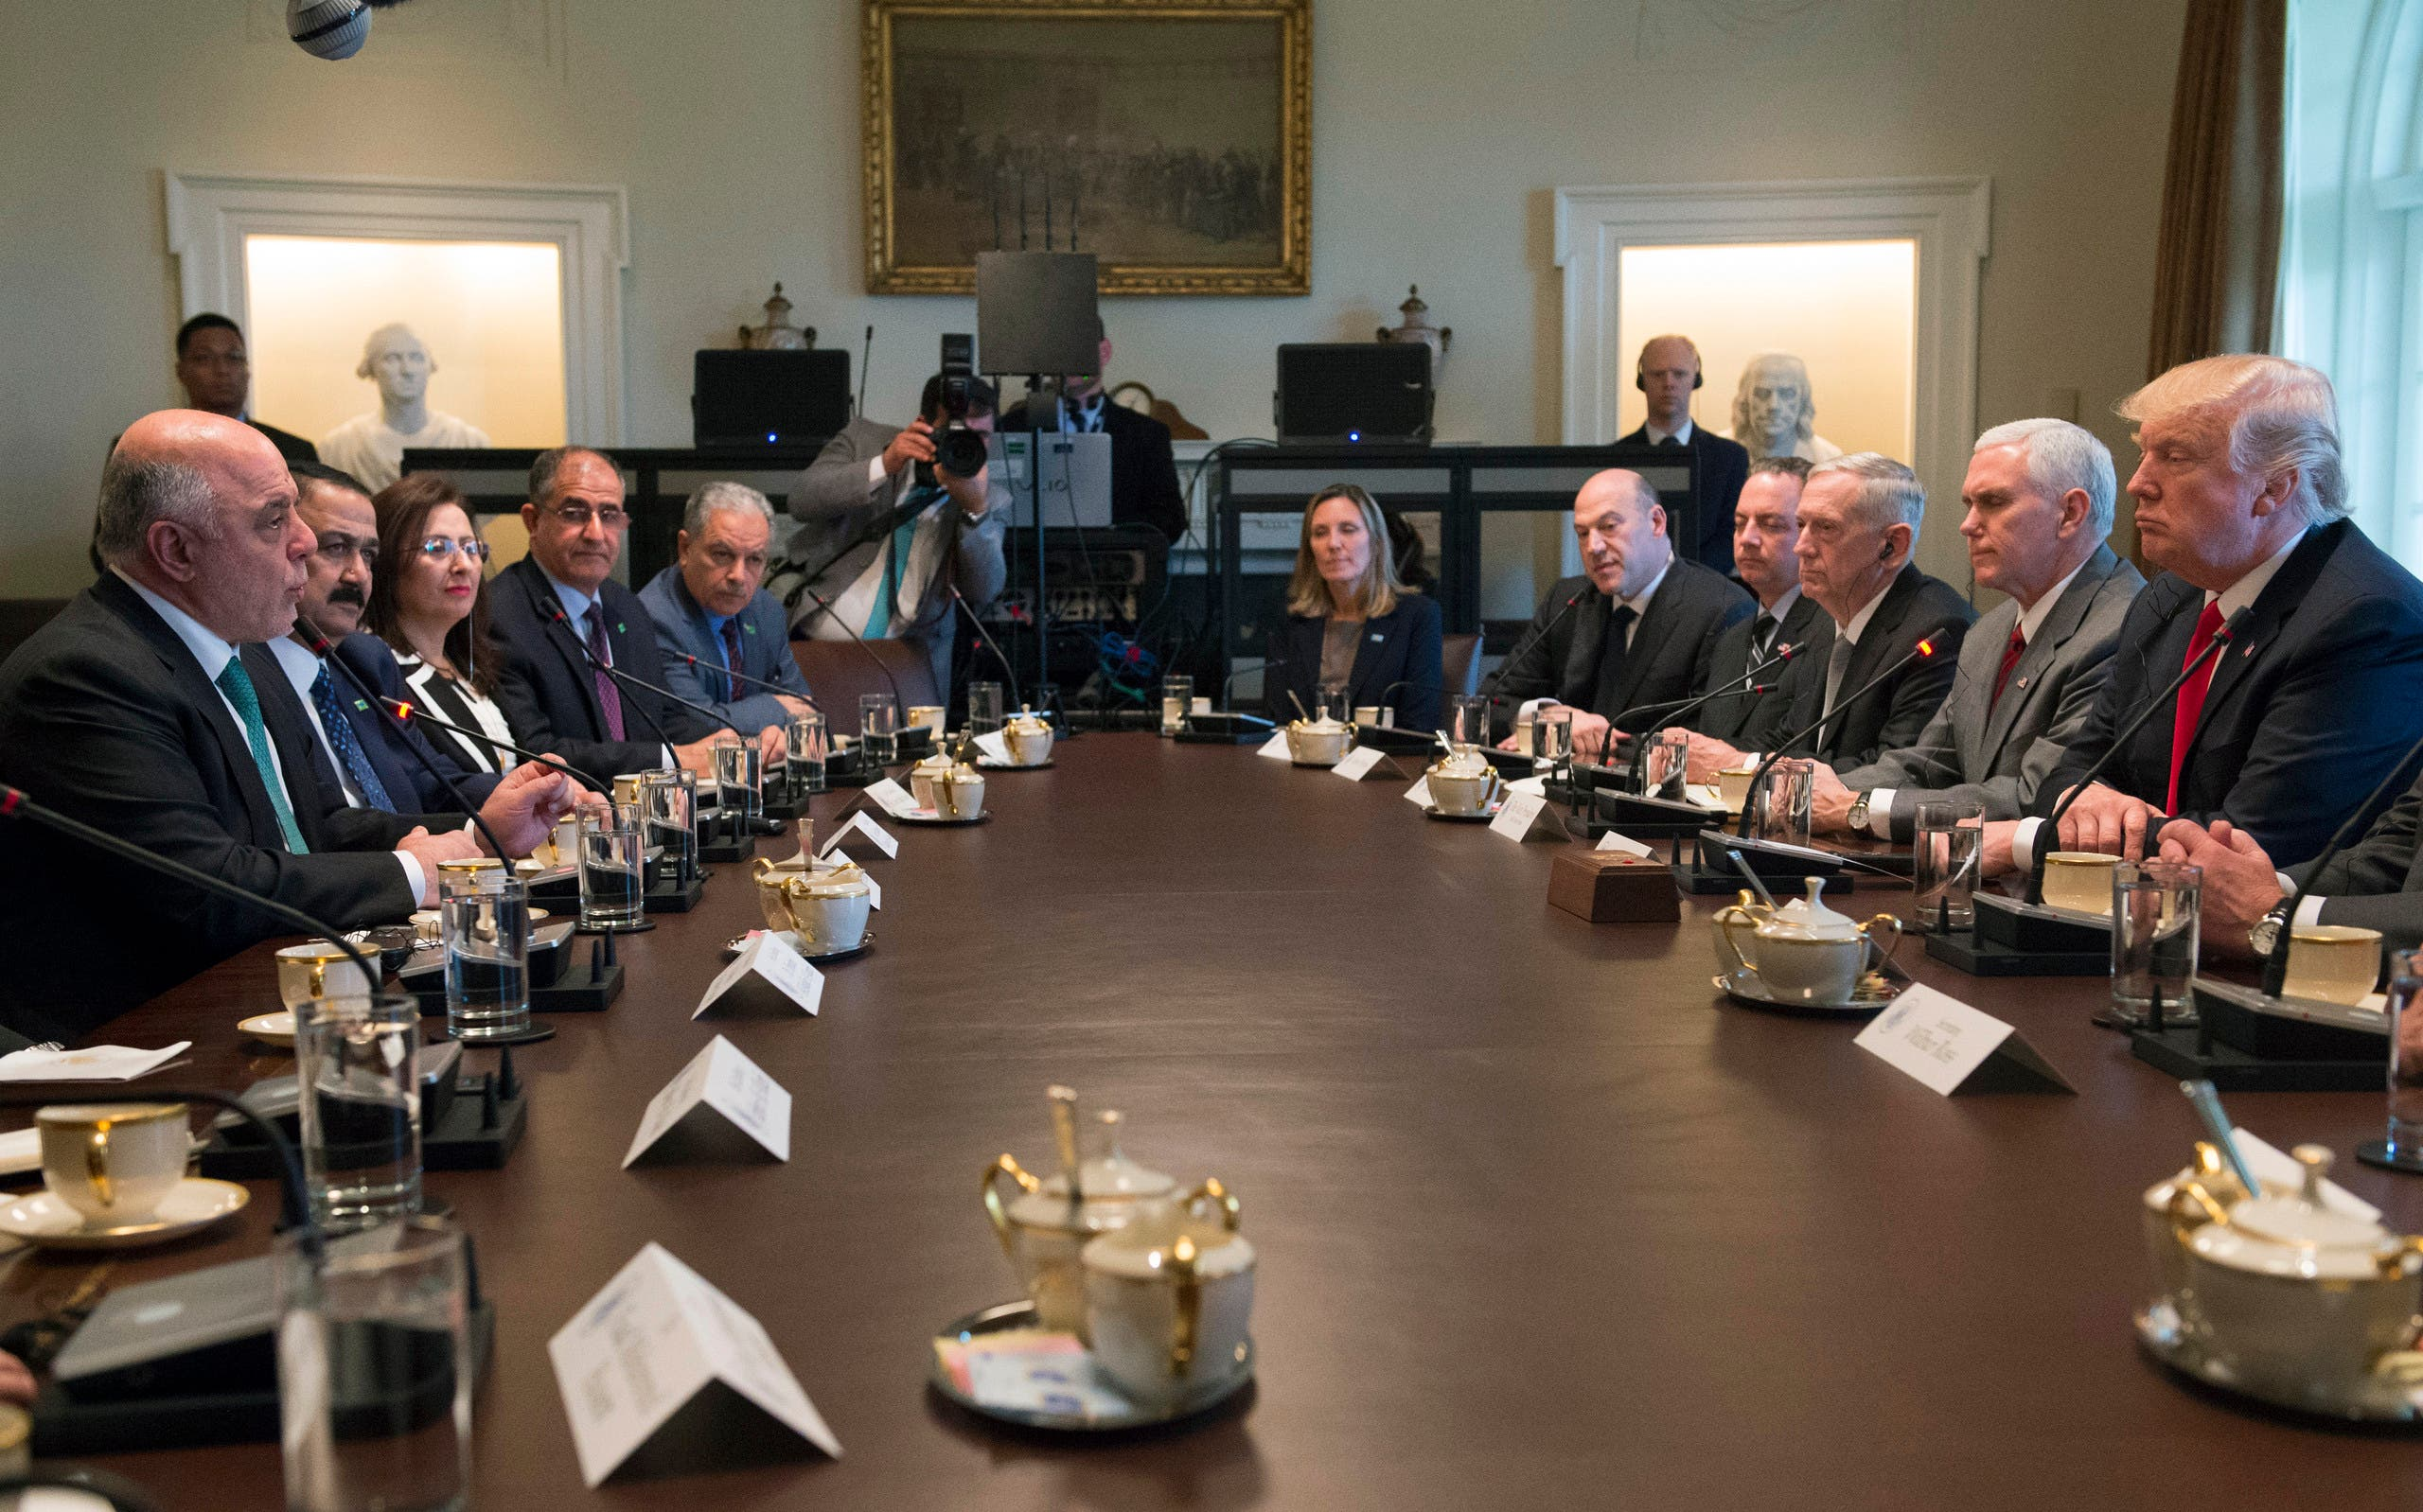 US President Donald Trump listens while Iraqi Prime Minister Haider Al-Abadi speaks during their meeting in the Cabinet Room in the White House on March 20, 2017, in Washington, DC. AFP